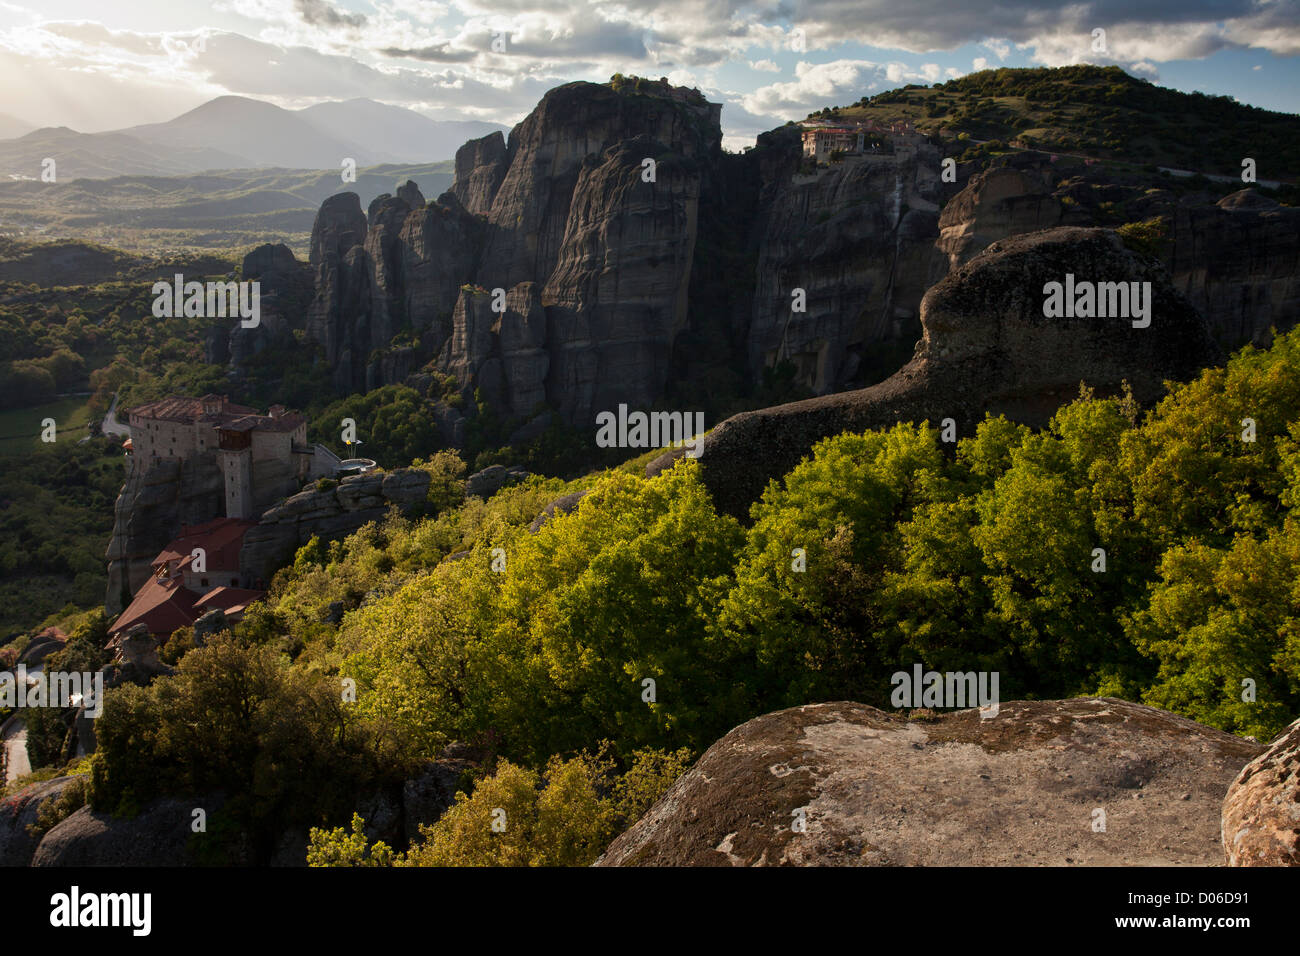 Monasteries and Conglomerate cliffs at Meteora - World Heritage Site in north central Greece. - Stock Image